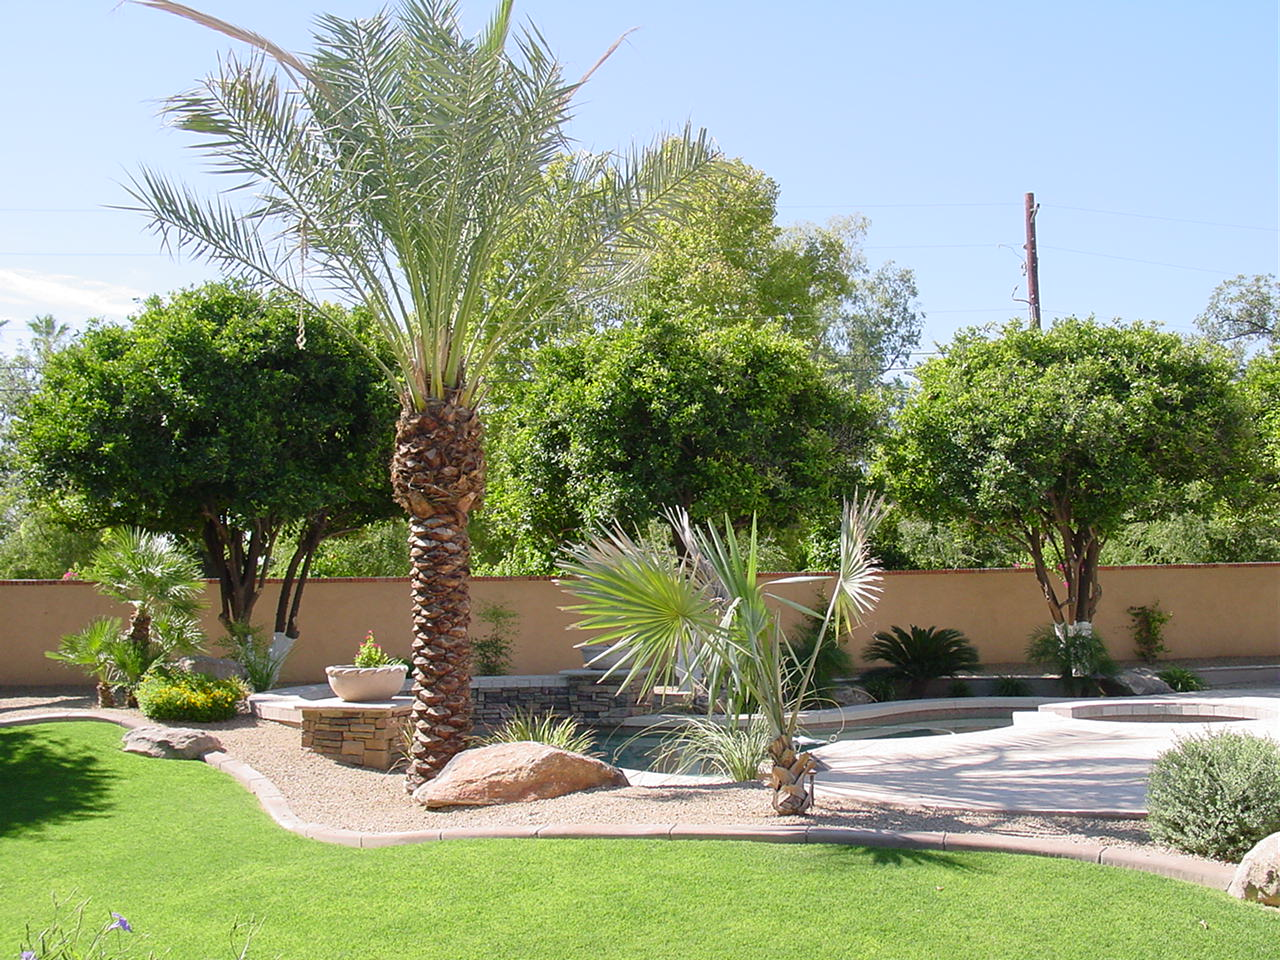 Great Arizona Front Yard Landscape Design Ideas 1280 x 960 · 314 kB · jpeg